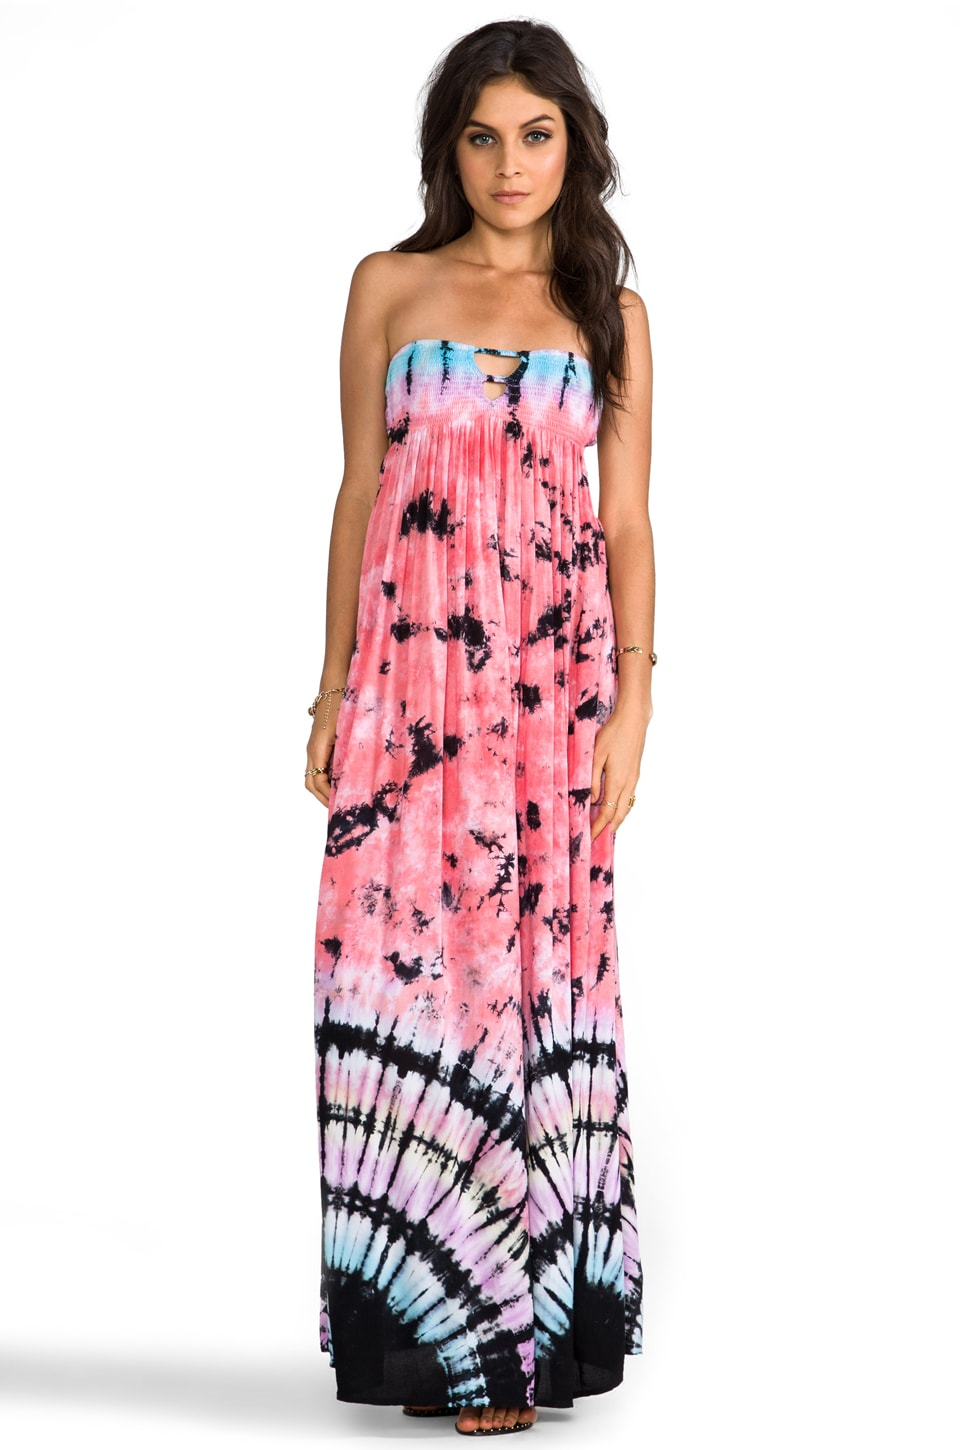 Indah Flamingo Smocked Bandeau Maxi Dress in Tie Dye